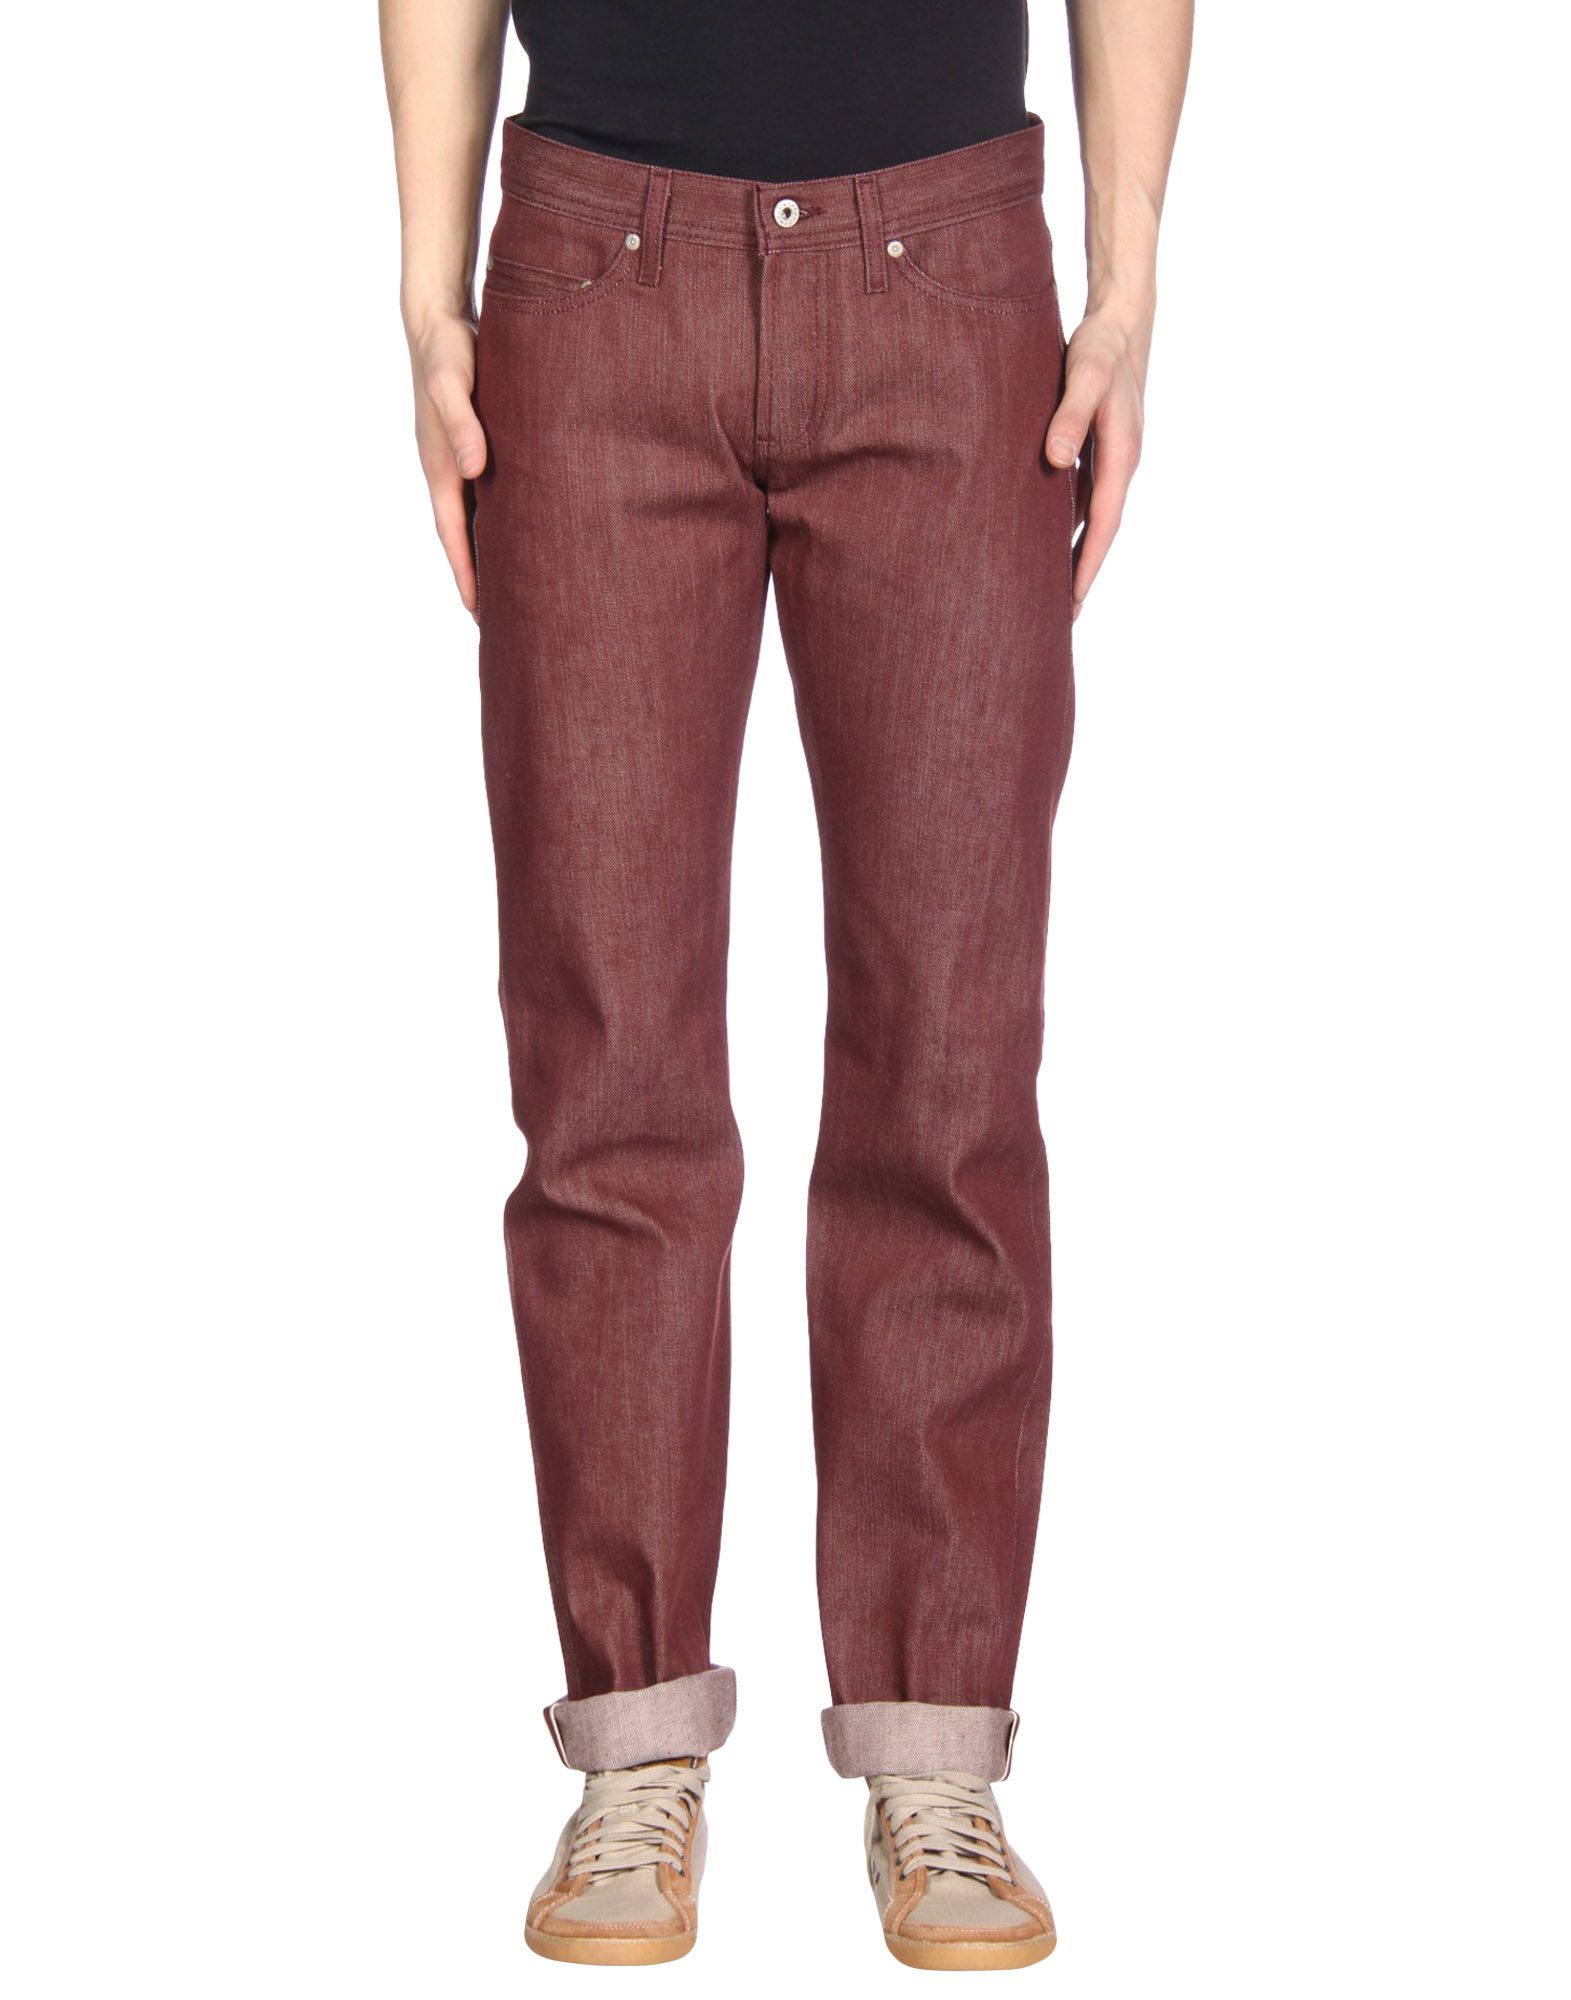 NAKED & FAMOUS Denim Pants in Maroon